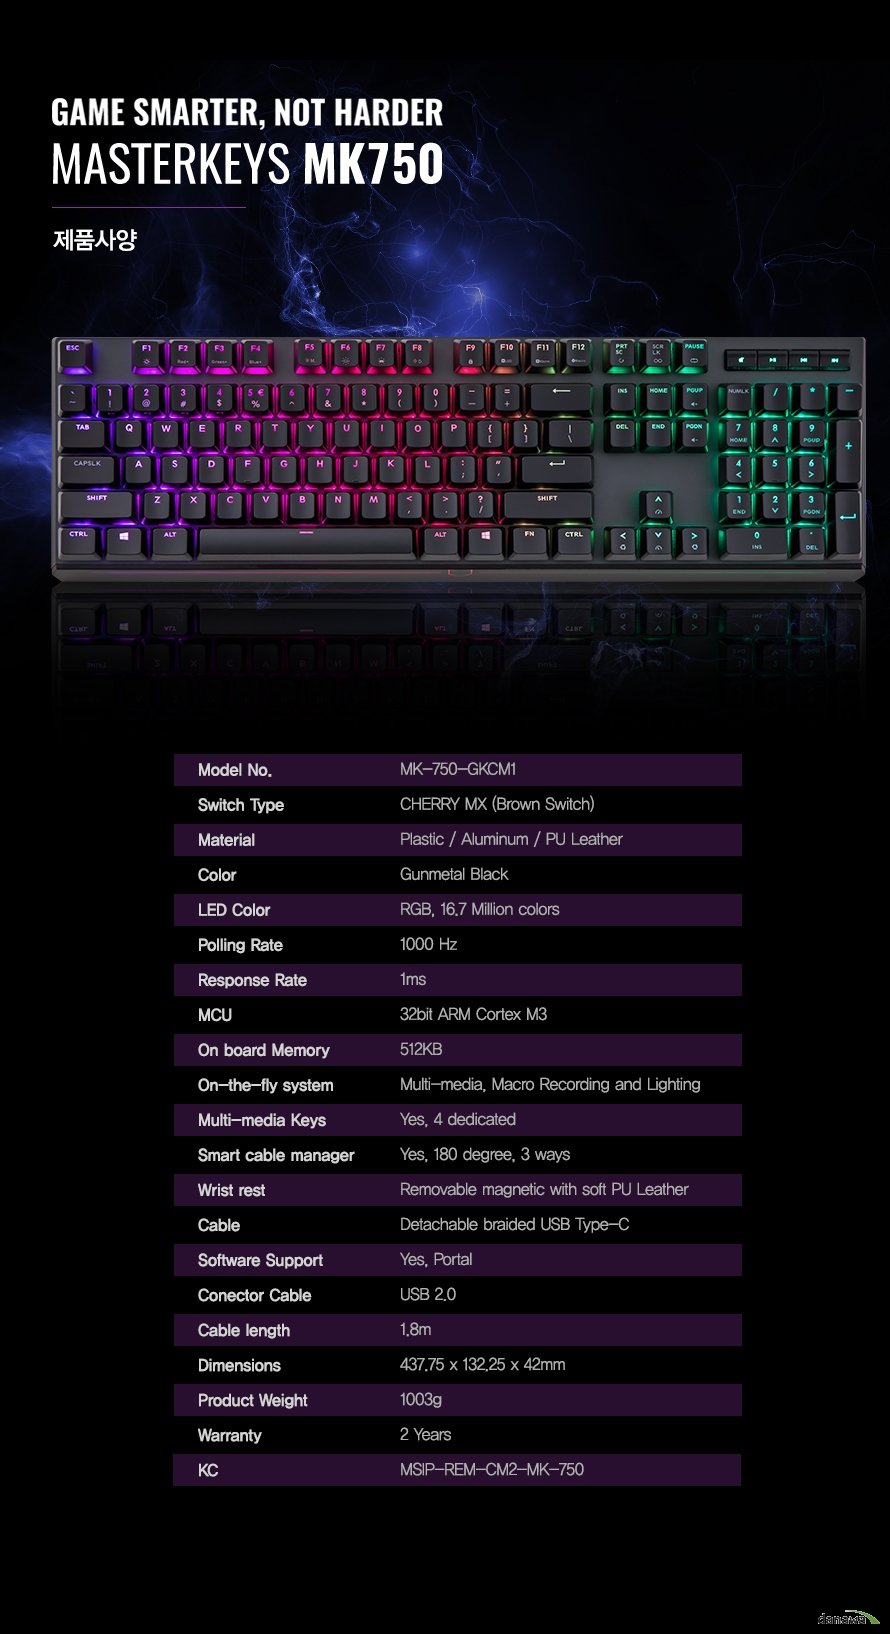 제품 상세 정보        MODEL     MK 750 GKCM1        SWITCH TYPE     CHERRY MX BROWM SWITCH        MATERIAL     PLASTIC AND ALUMINUM AND PU LEATHER        COLOR     GUNMETAL BLACK        LED COLOR     16.7 MILLION RGB COLORS        POLLING RATE         1MS        MCU     32BIT ARM CORTEX M3        ON BOARD MEMORY     512KB        ON THE FLY SYSTEM     MULTI MEDIA AND MACRO RECORING AND LIGHTING        MULTI MEDIA KEYS     YES 4 DEDICATED        SMART CABLE MANAGER     YES 180 DEGREE 3WAYS        WRIST REST     REMOVABLE MAGNETIC WITH SOFT PU LEATHER        CABLE     DETACHABLE BRAIDED USB TYPE C        SOFTWARE SUPPORT     YES PORTAL        CONNECTOR CABLE     USB 2.0        CABLE LENGTH    1.8M        DIMENSIONS     437.75 x 132.25 x 42MM        PRODUCT WEIGHT     1003G        WARRANTY     2 YEARS